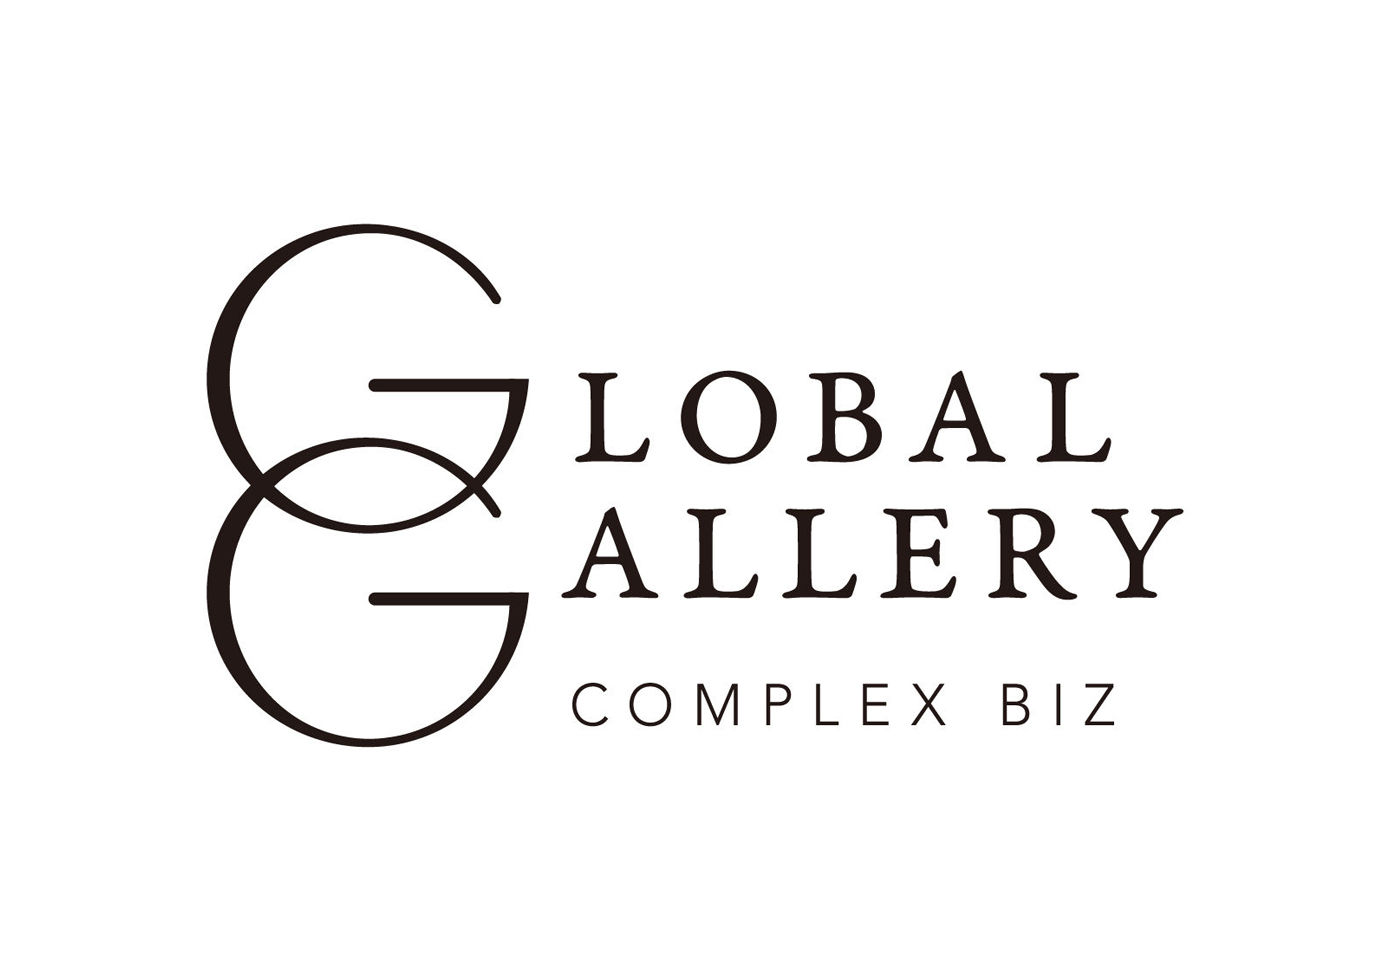 GLOBAL GALLERY COMPLEX BIZ